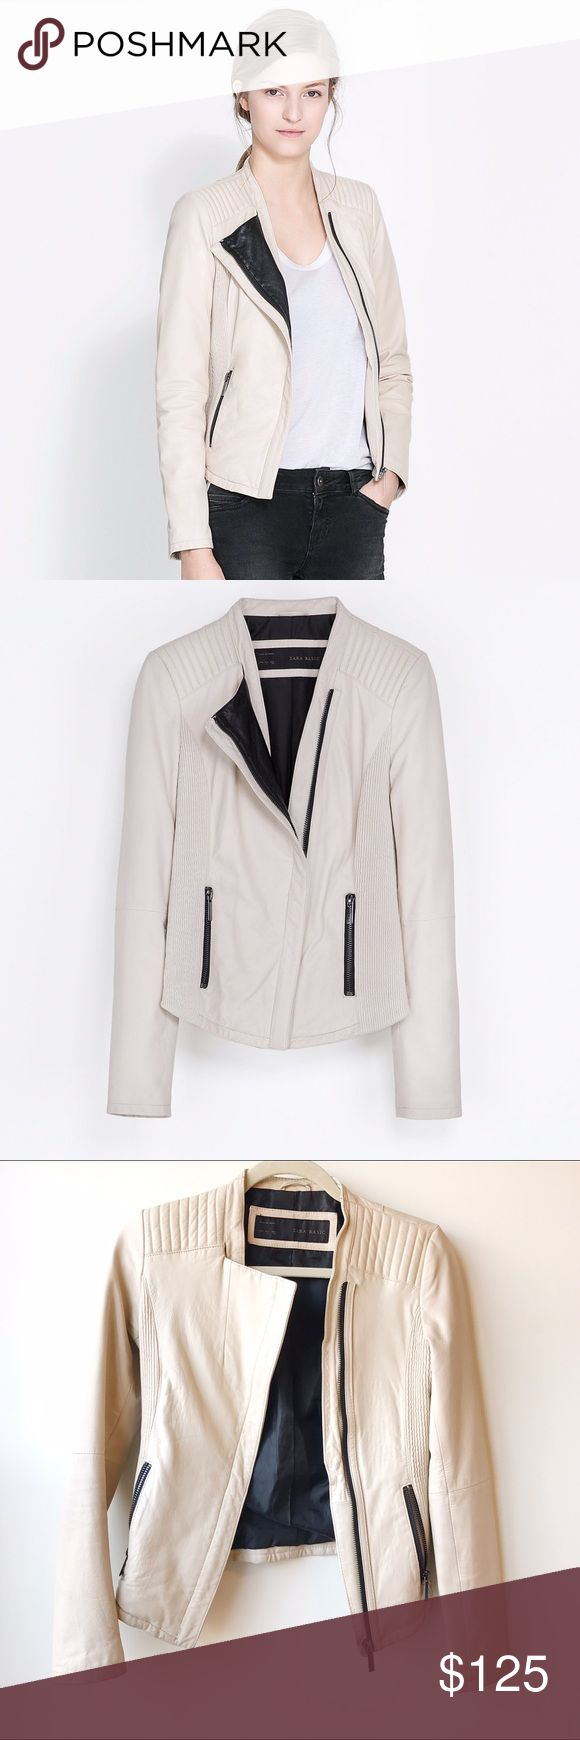 RARE Zara Lamb Leather Jacket RARE find!!! Completely sold out. 100% lambskin leather. Color is cream/beige. Worn only a couple times. In PERFECT condition. Price is firm.   ✅Bundle Discounts! 🚫Trades/PayPal/Other Apps 🚫No lowball offers Zara Jackets & Coats Utility Jackets